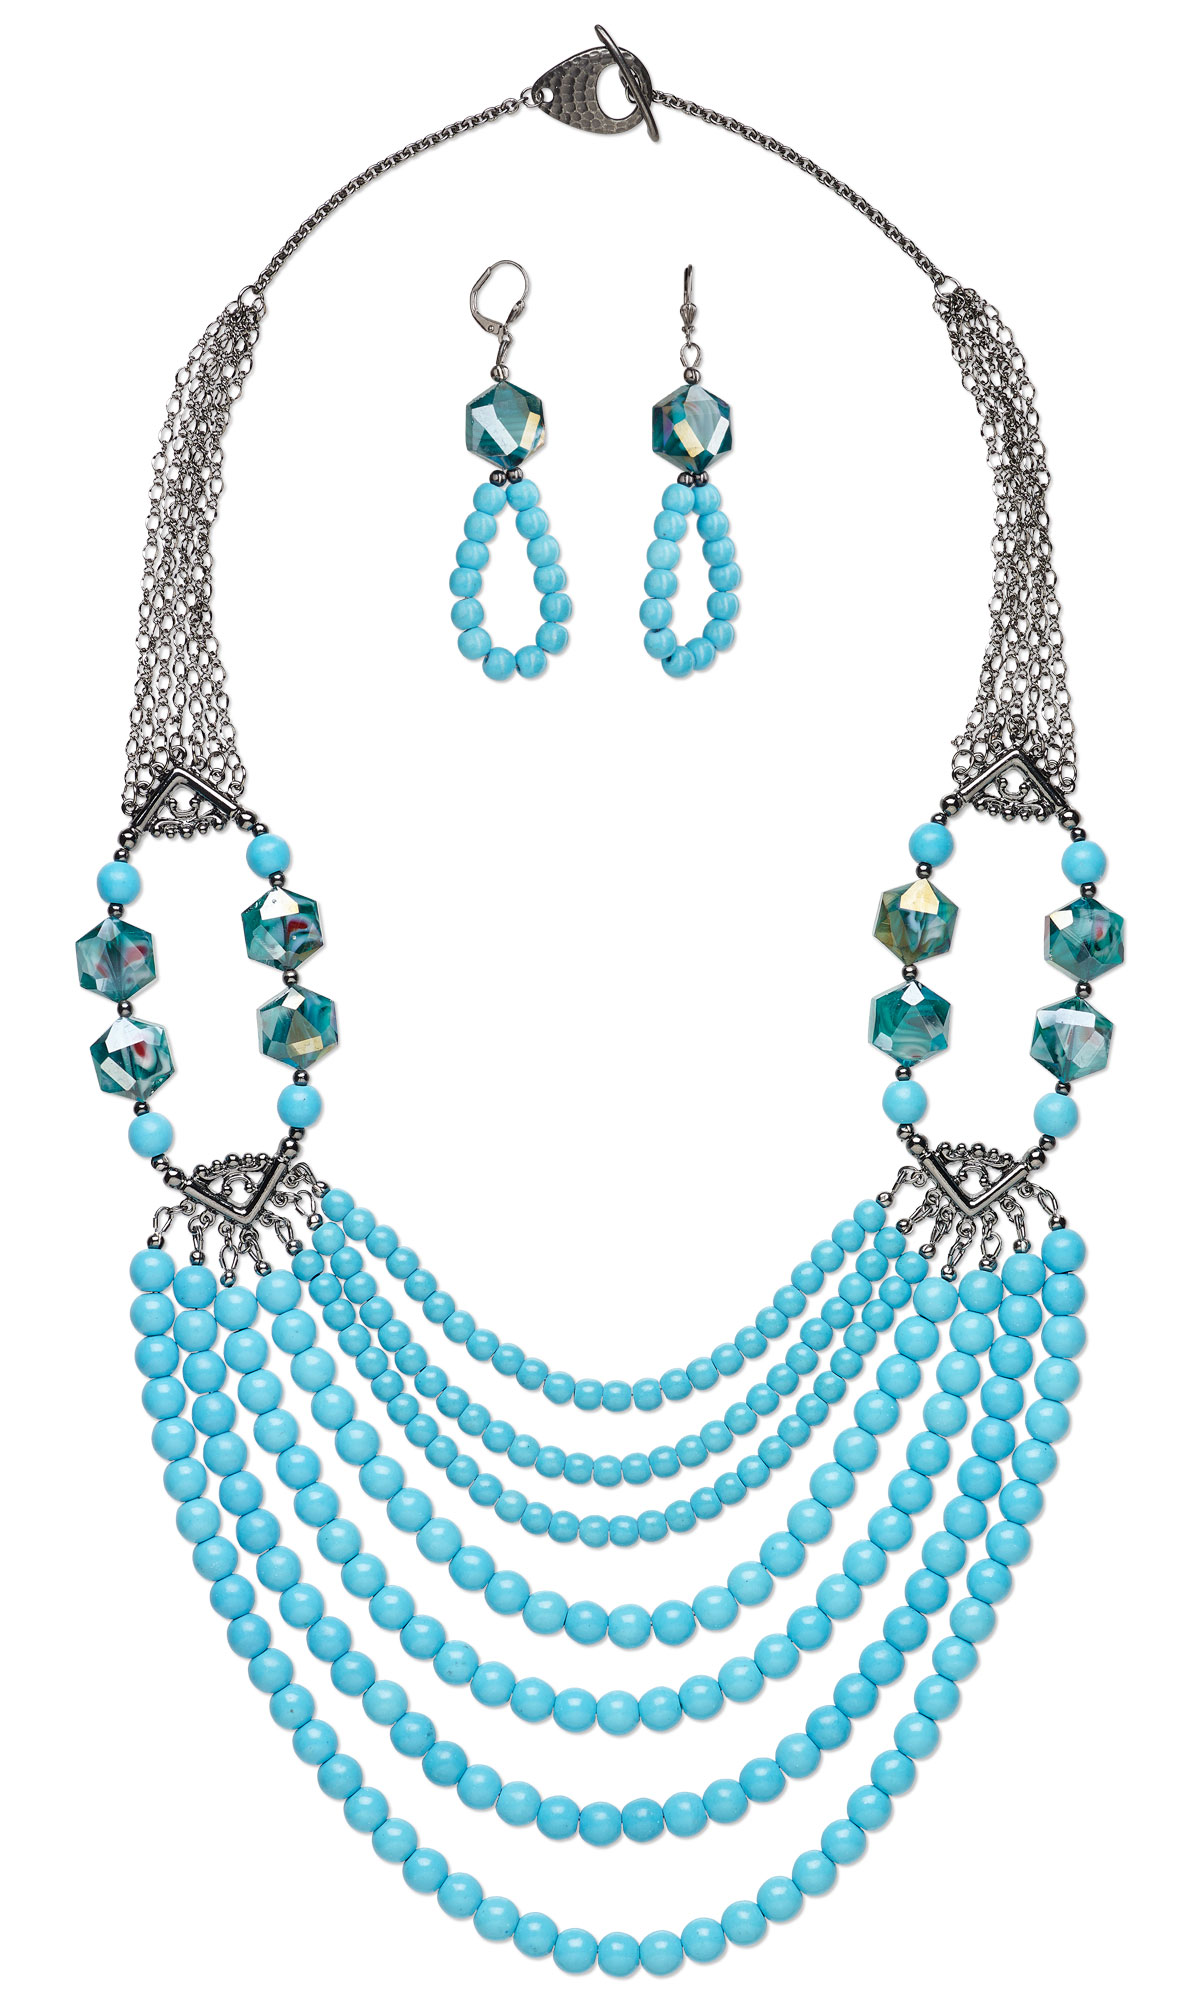 jewelry design multi strand necklace and earring set